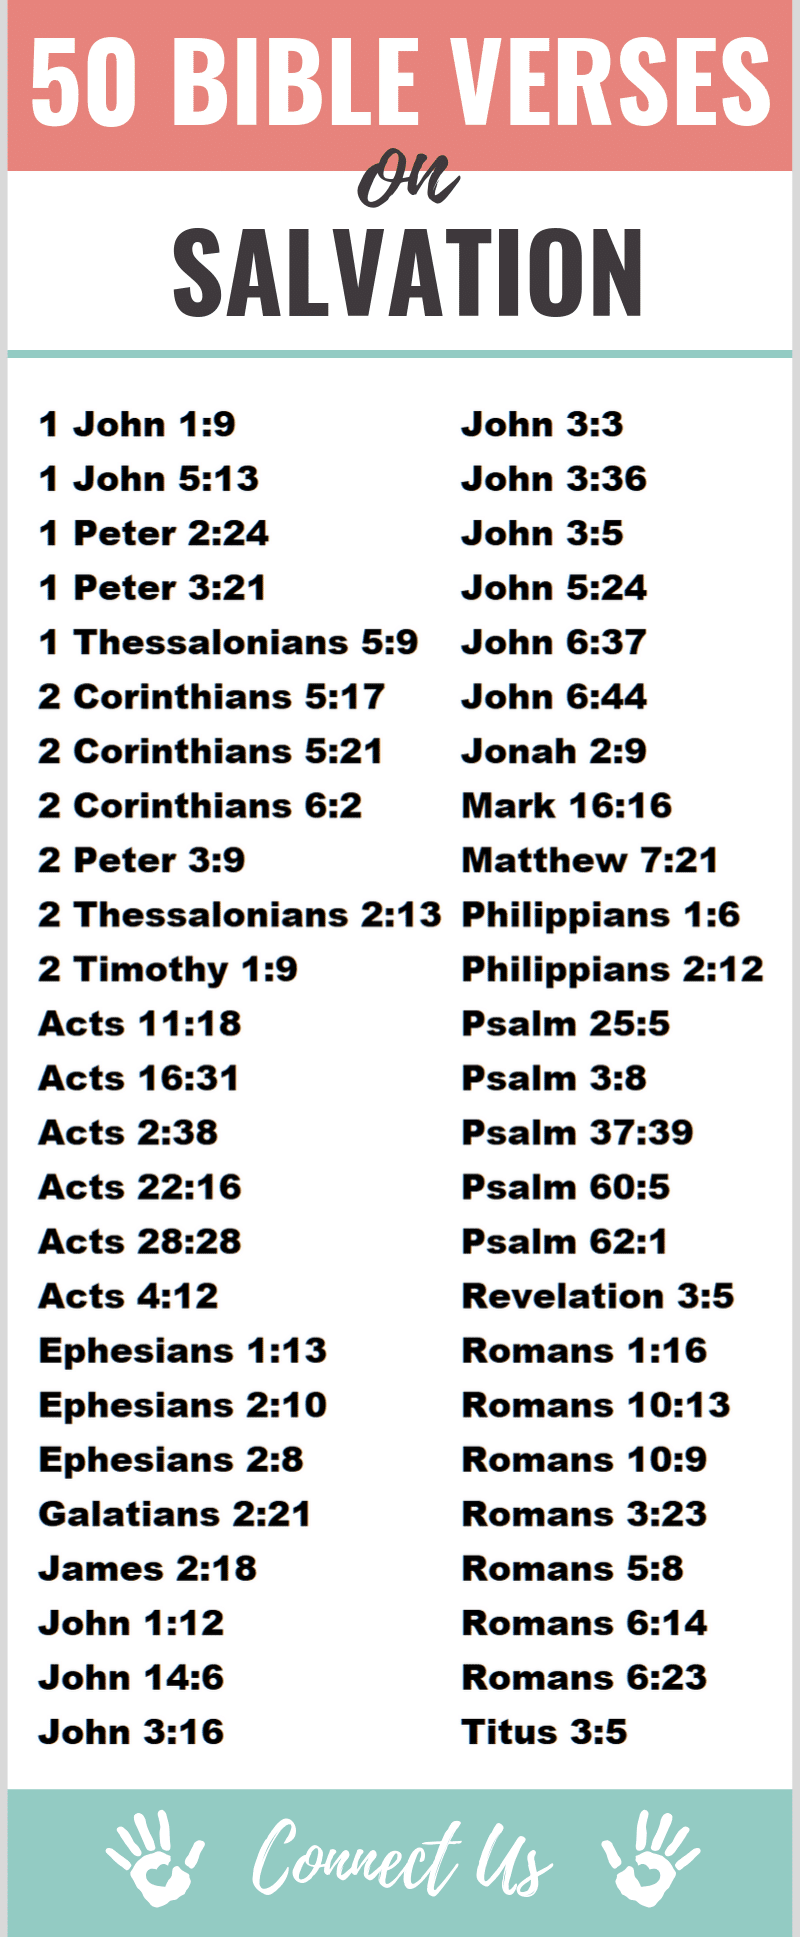 Bible Verses on Salvation